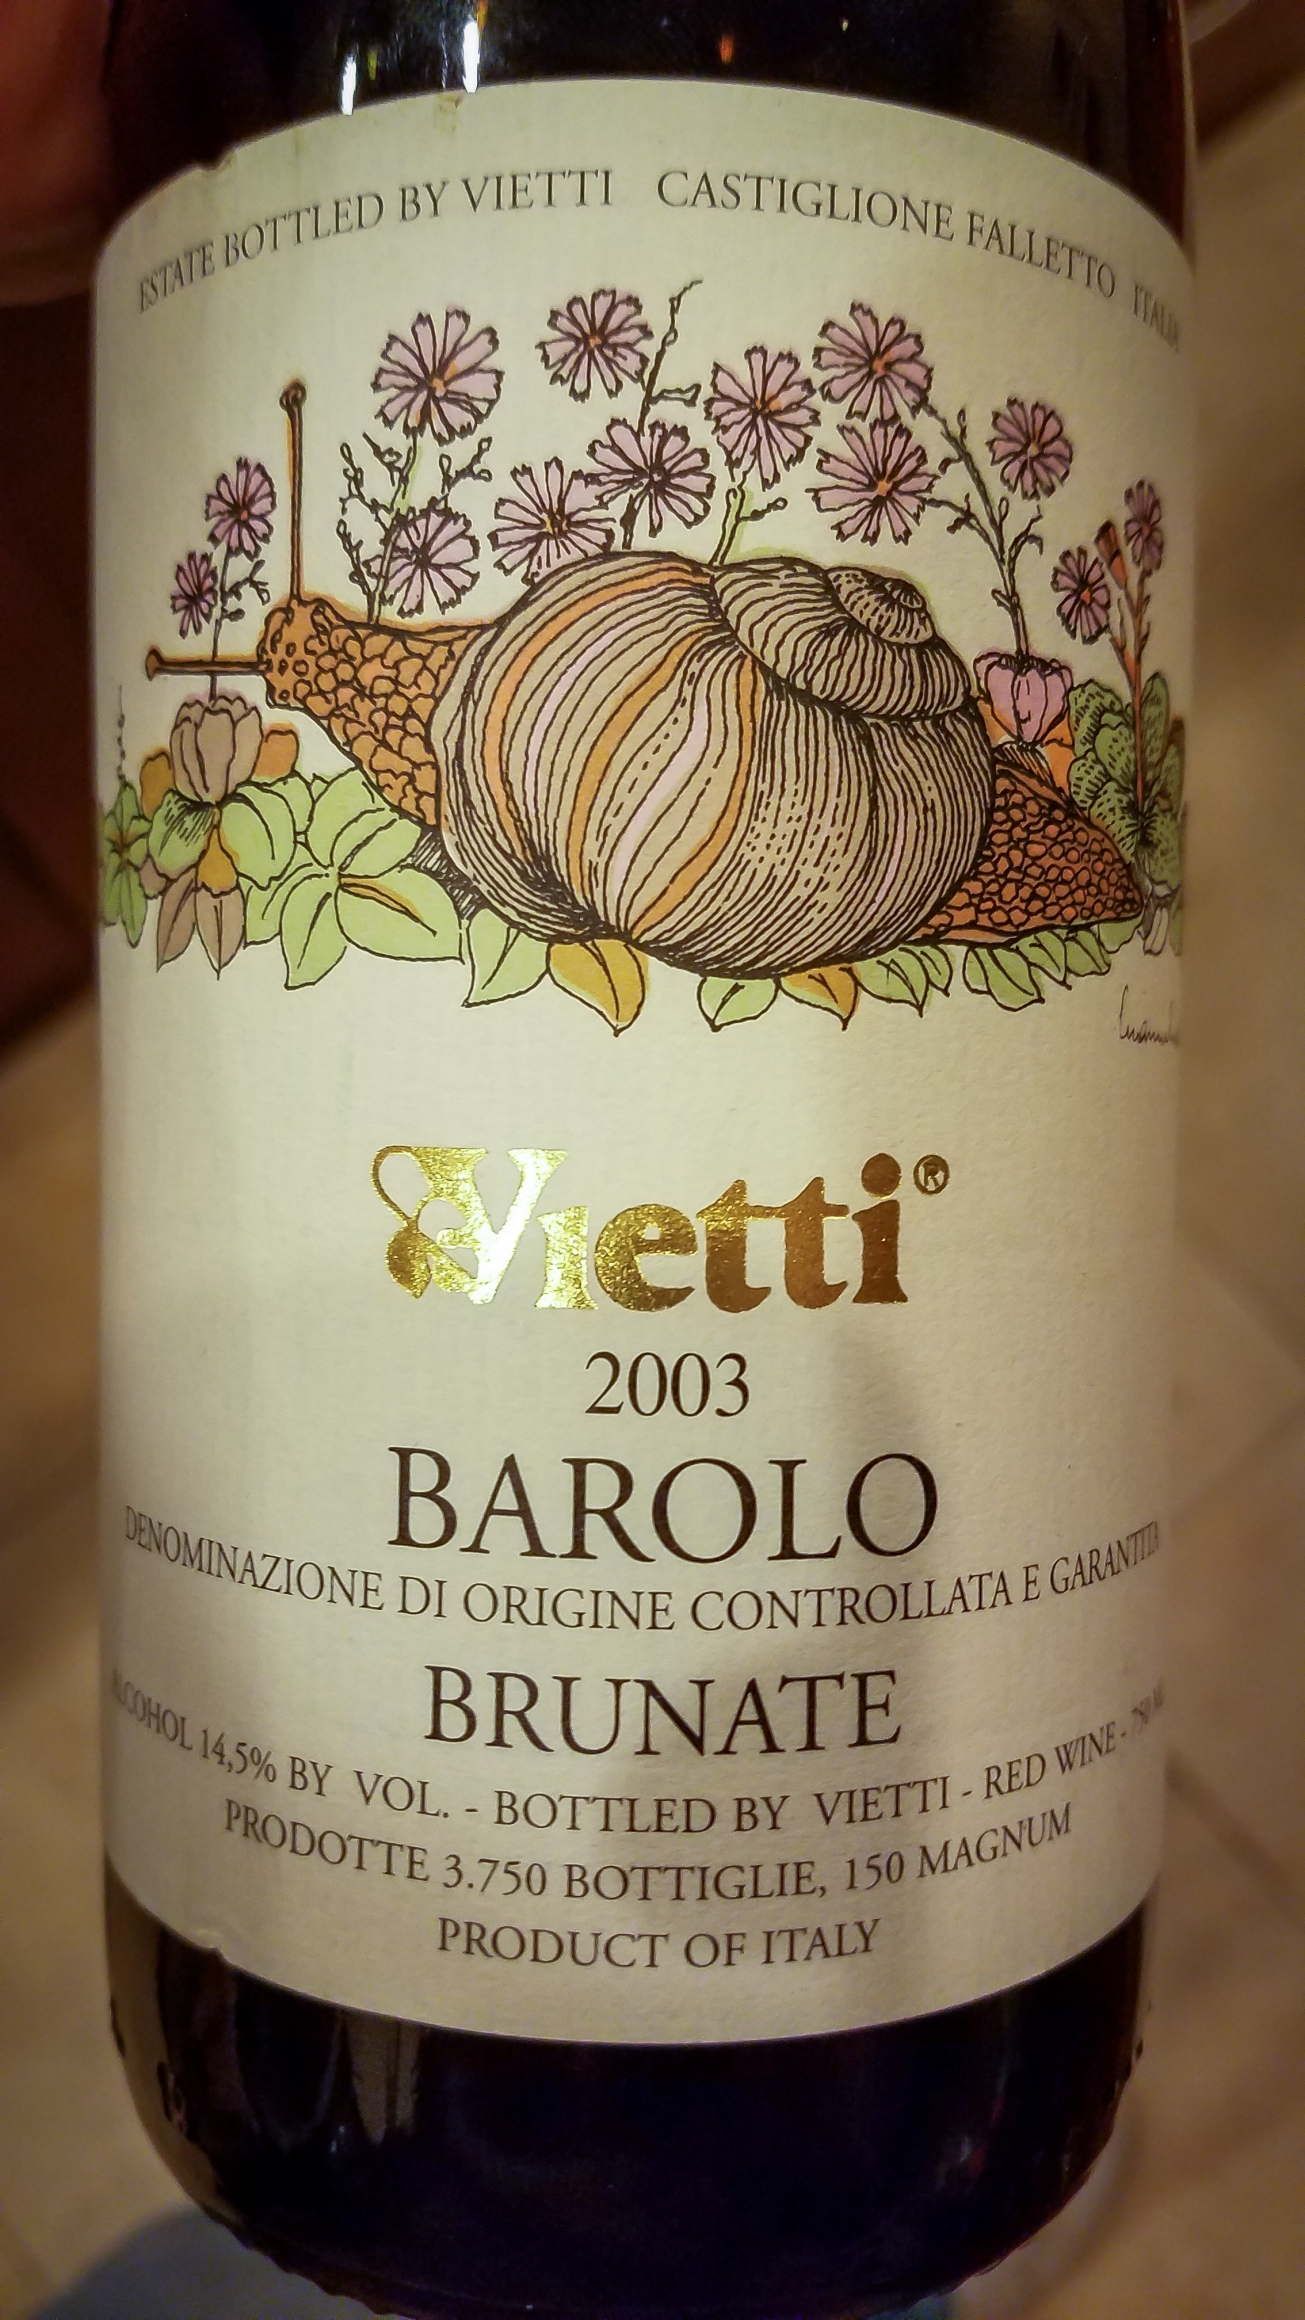 2003 Vietti Barolo Brunate